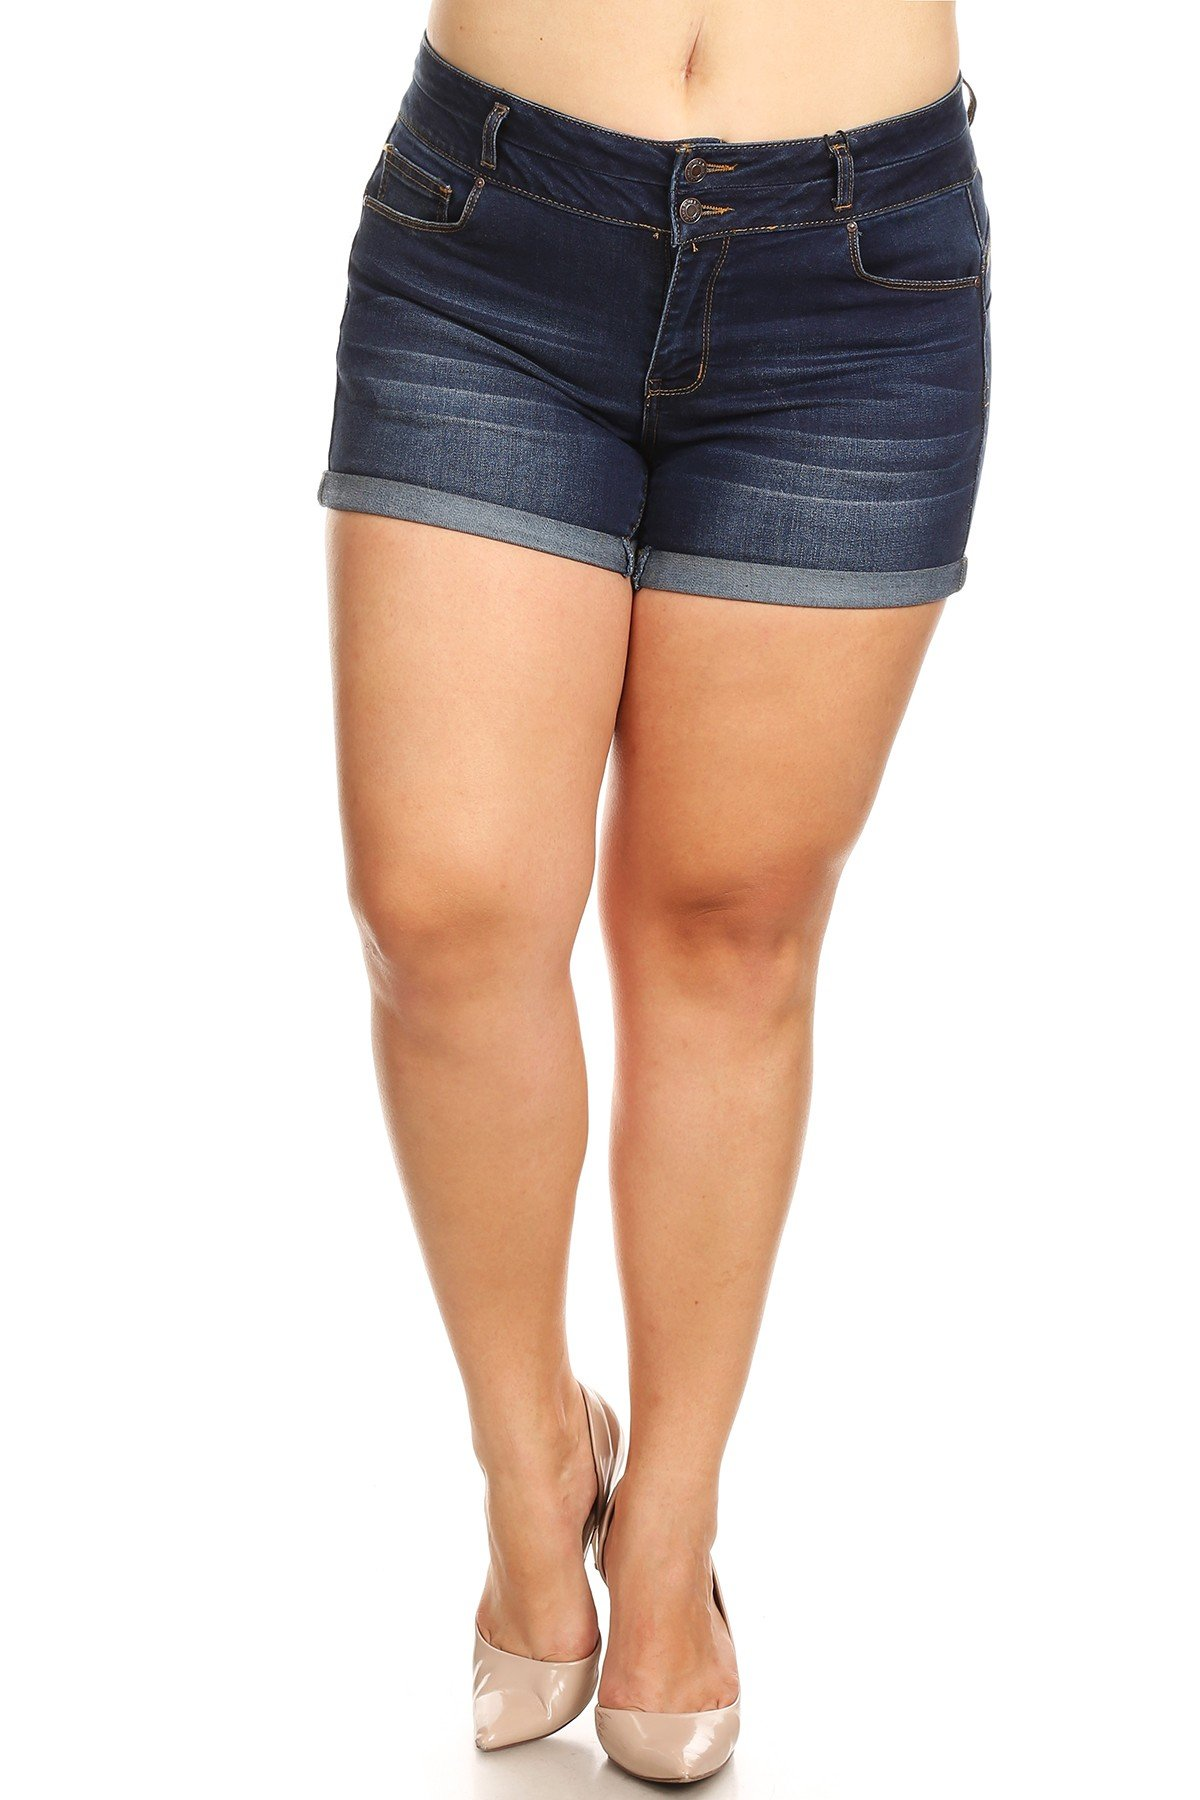 Women's Plus Size High Waist Denim Jean Shorts (1X, Dark Wash)